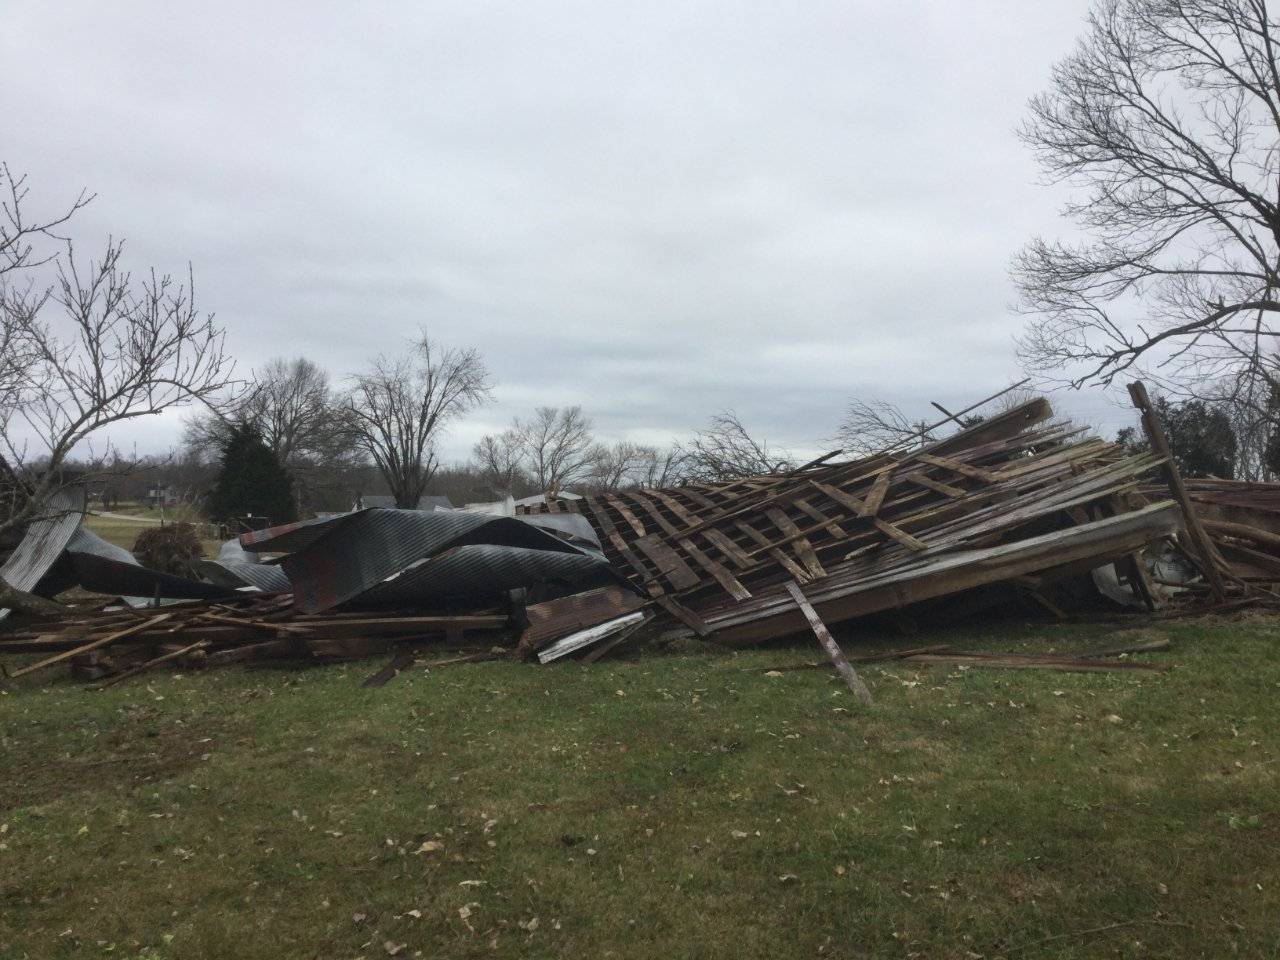 Tornado photo from Dogwood Indiana from National Weather Service_1546375640009.jpg.jpg